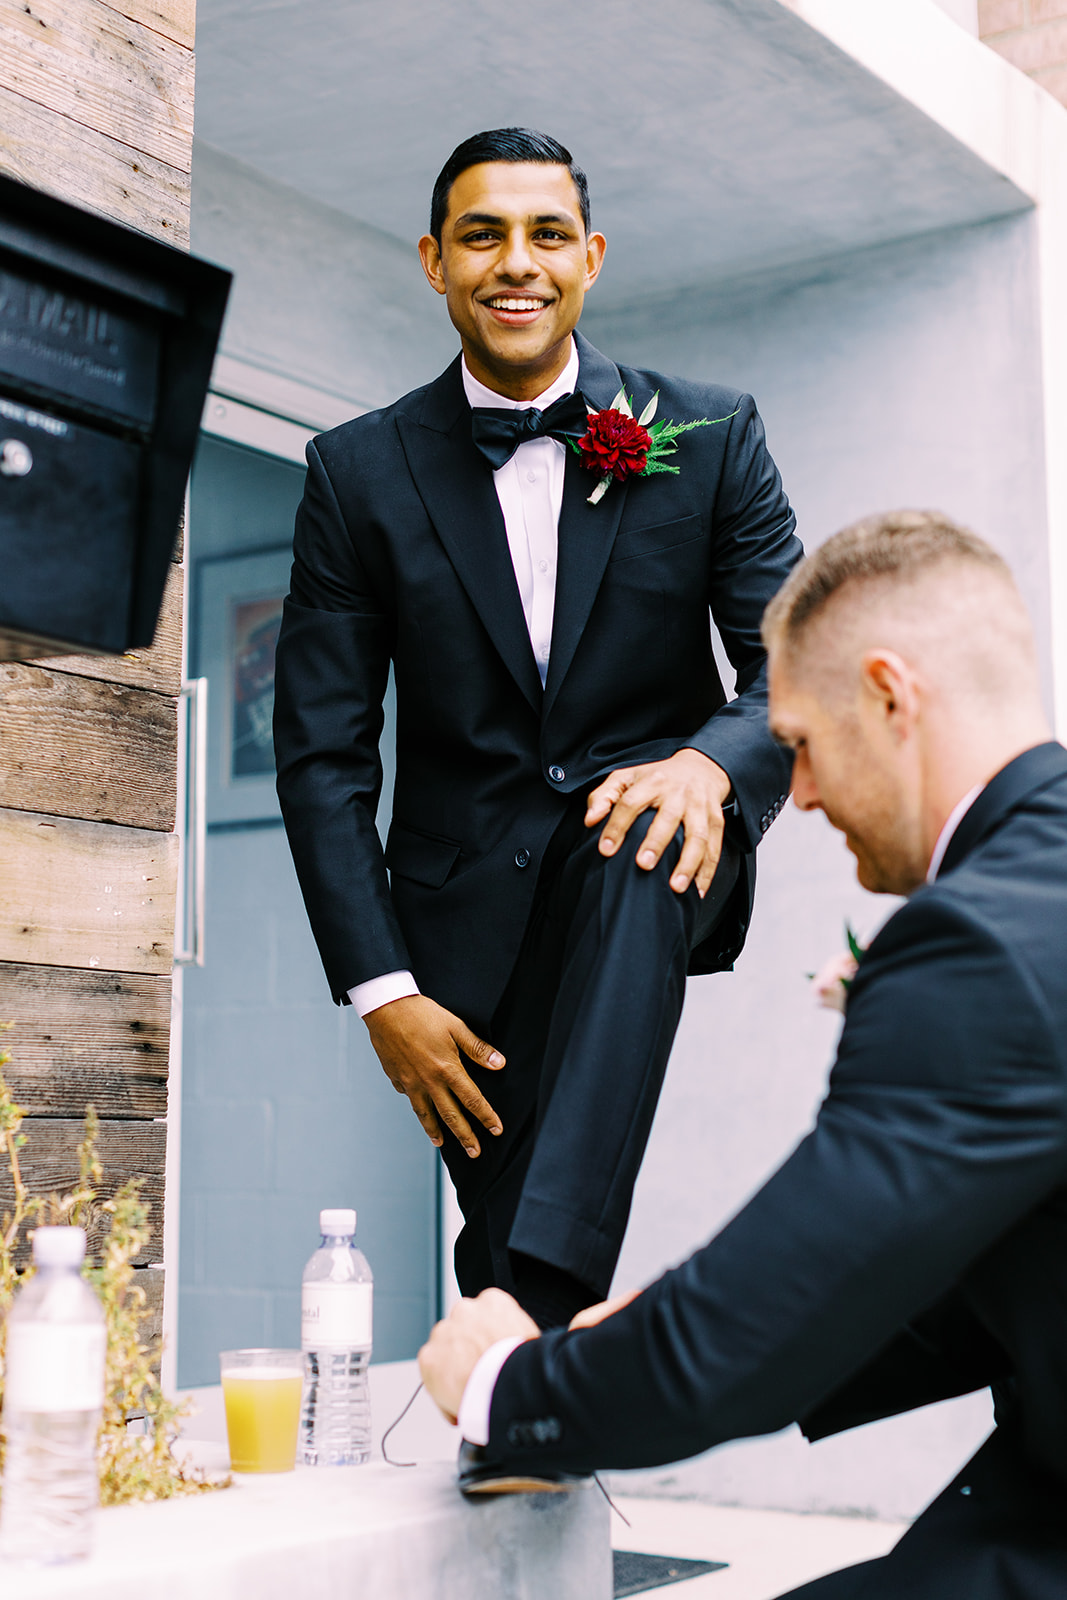 Groom gets shoes tied